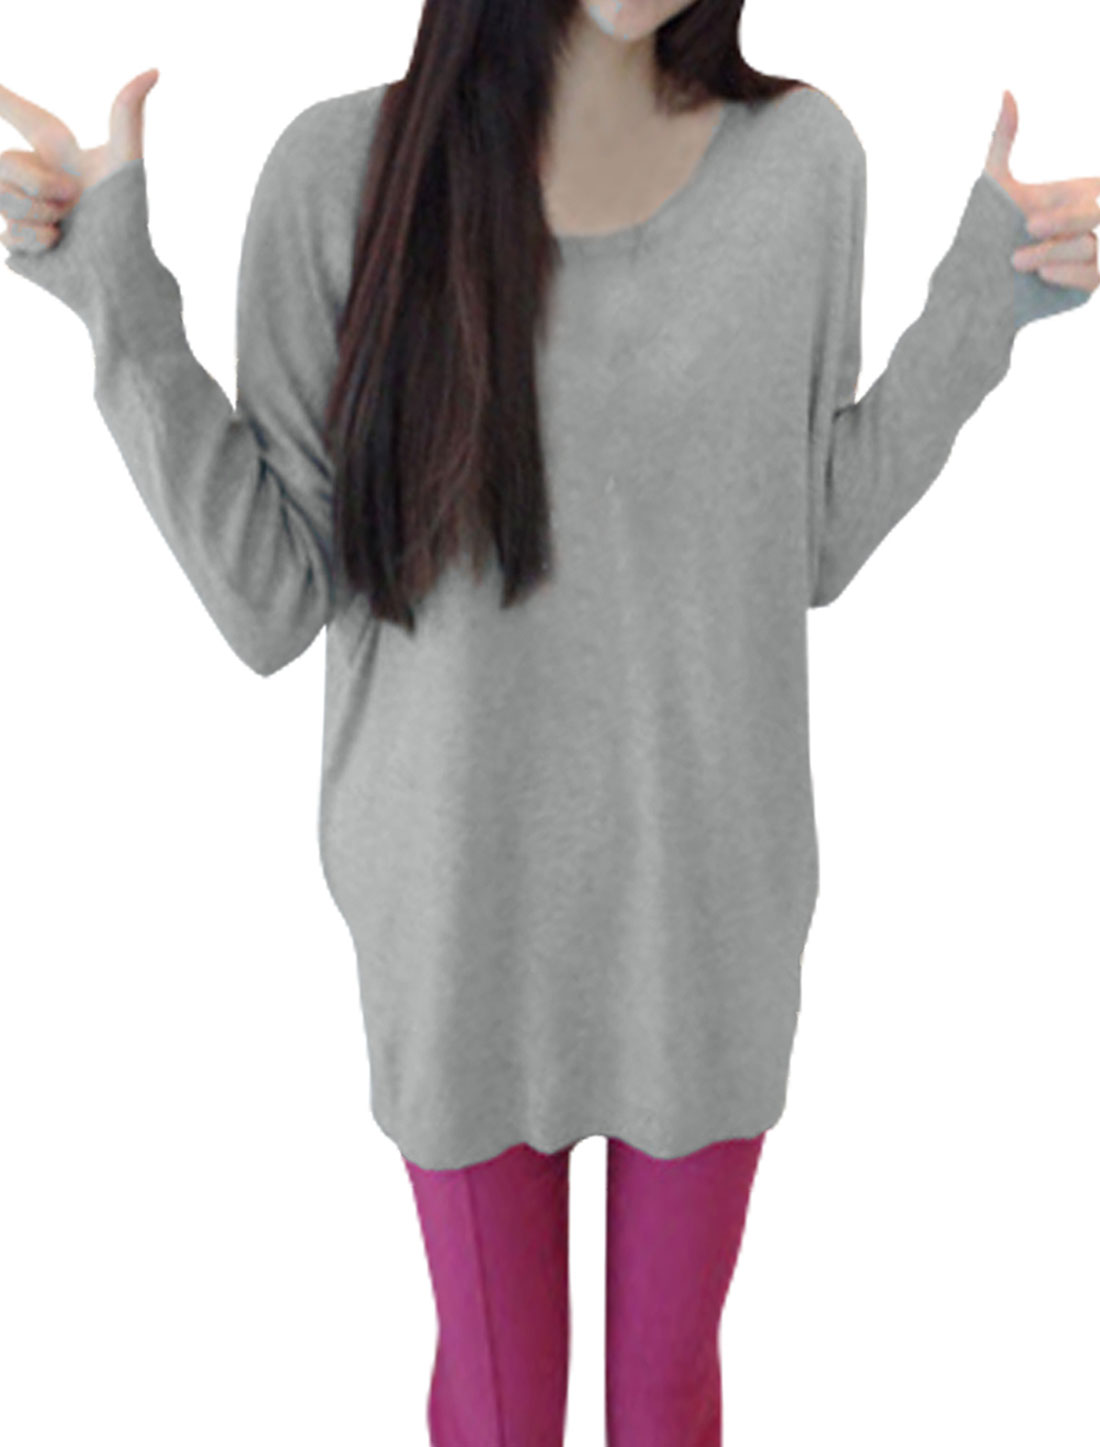 Lady Scoop Neck Long Sleeved Gray Knit Tunic Shirt XS